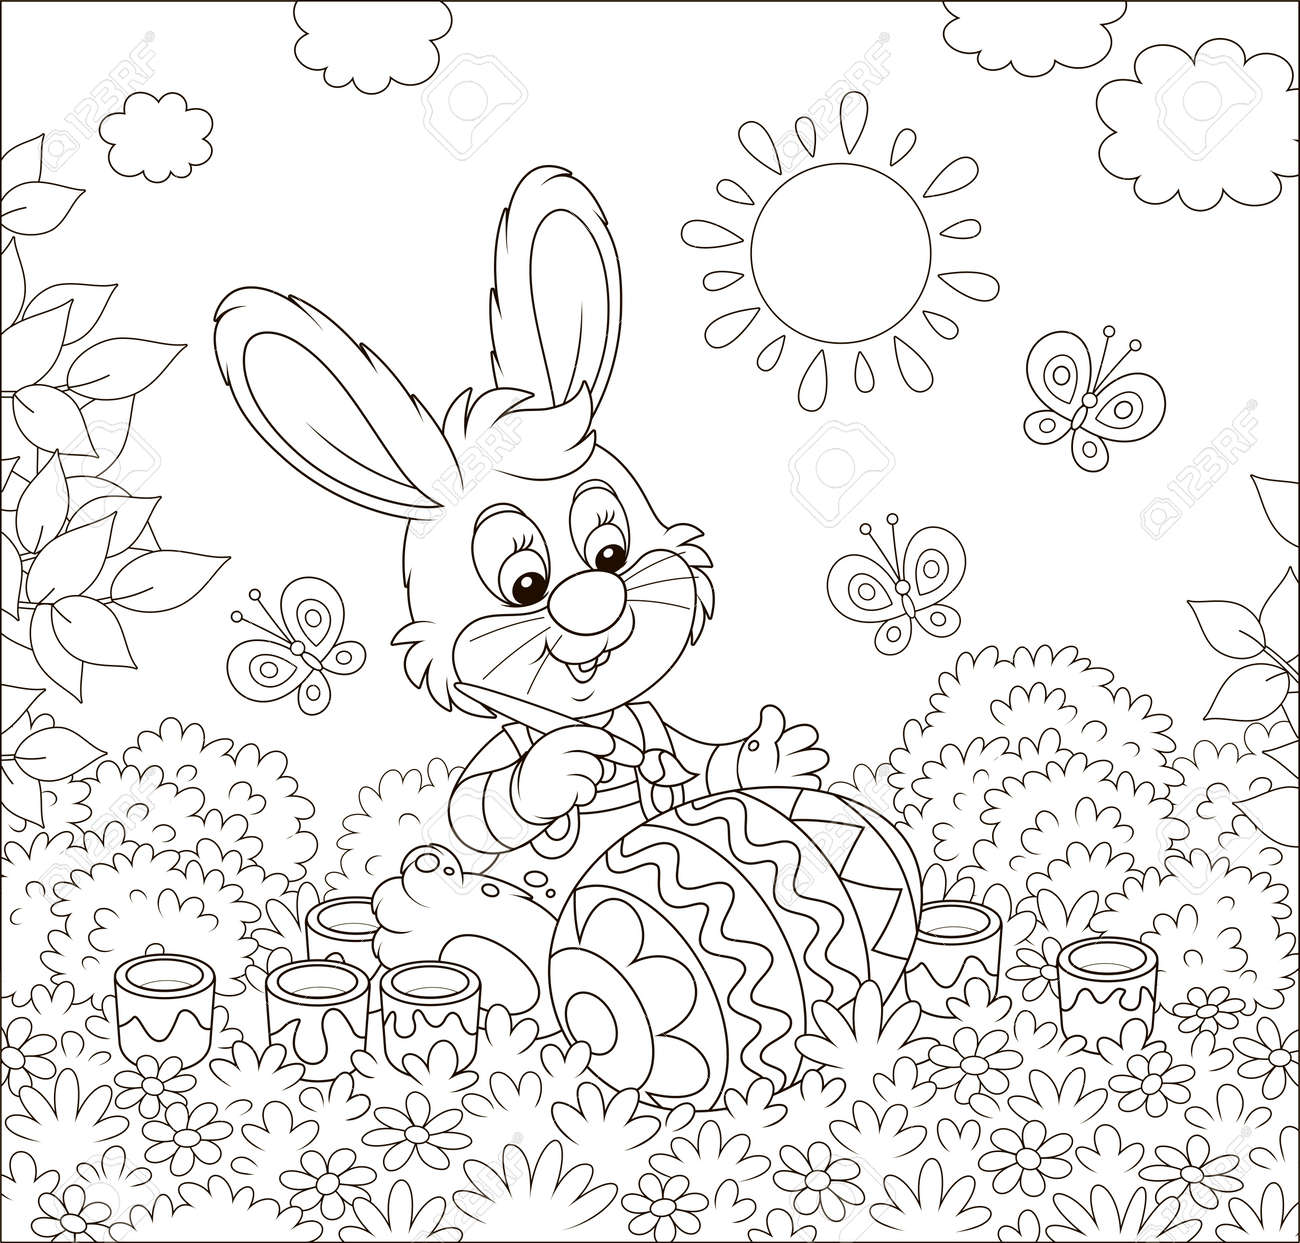 Little bunny coloring a big Easter egg on grass among flowers..